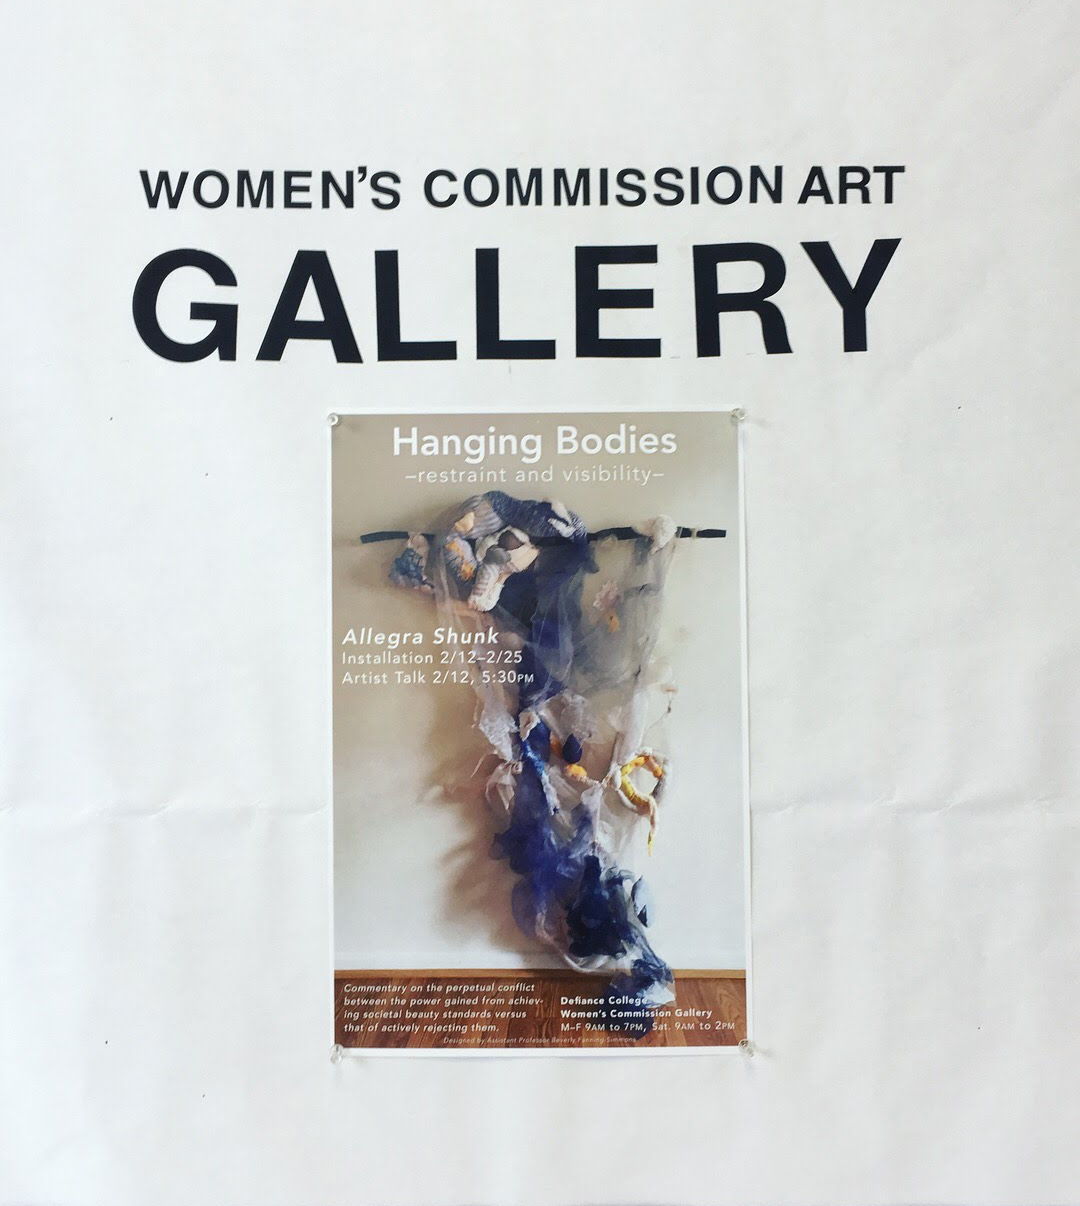 Hanging Bodies: Visibility and Restraint (2018); Women's Commission Gallery, Defiance, Ohio